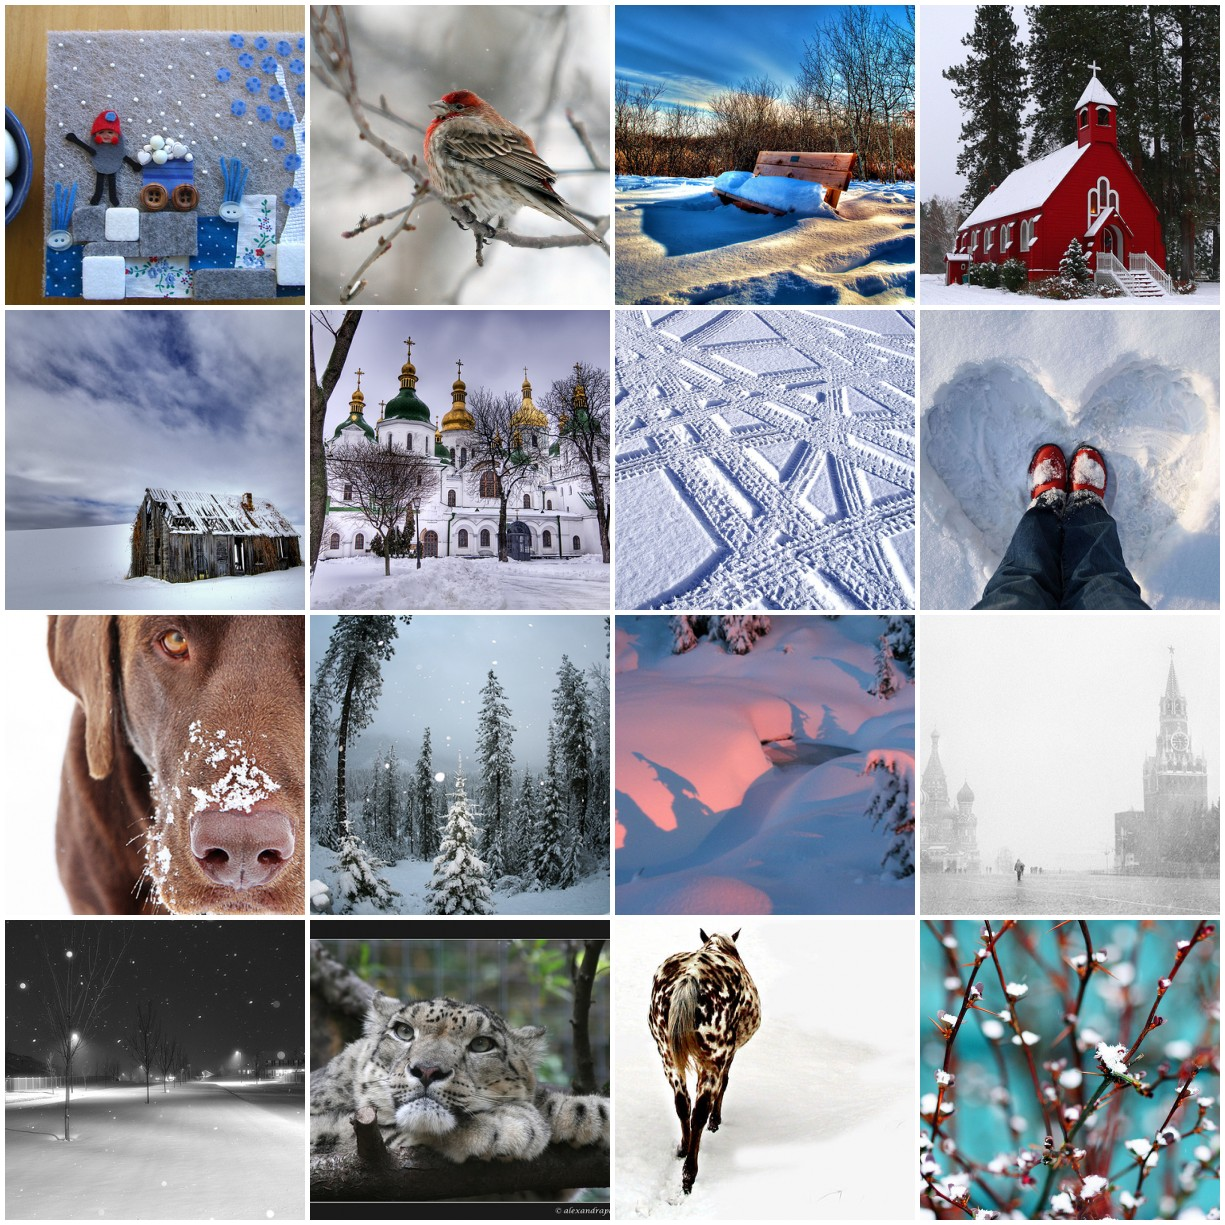 snow - images i like